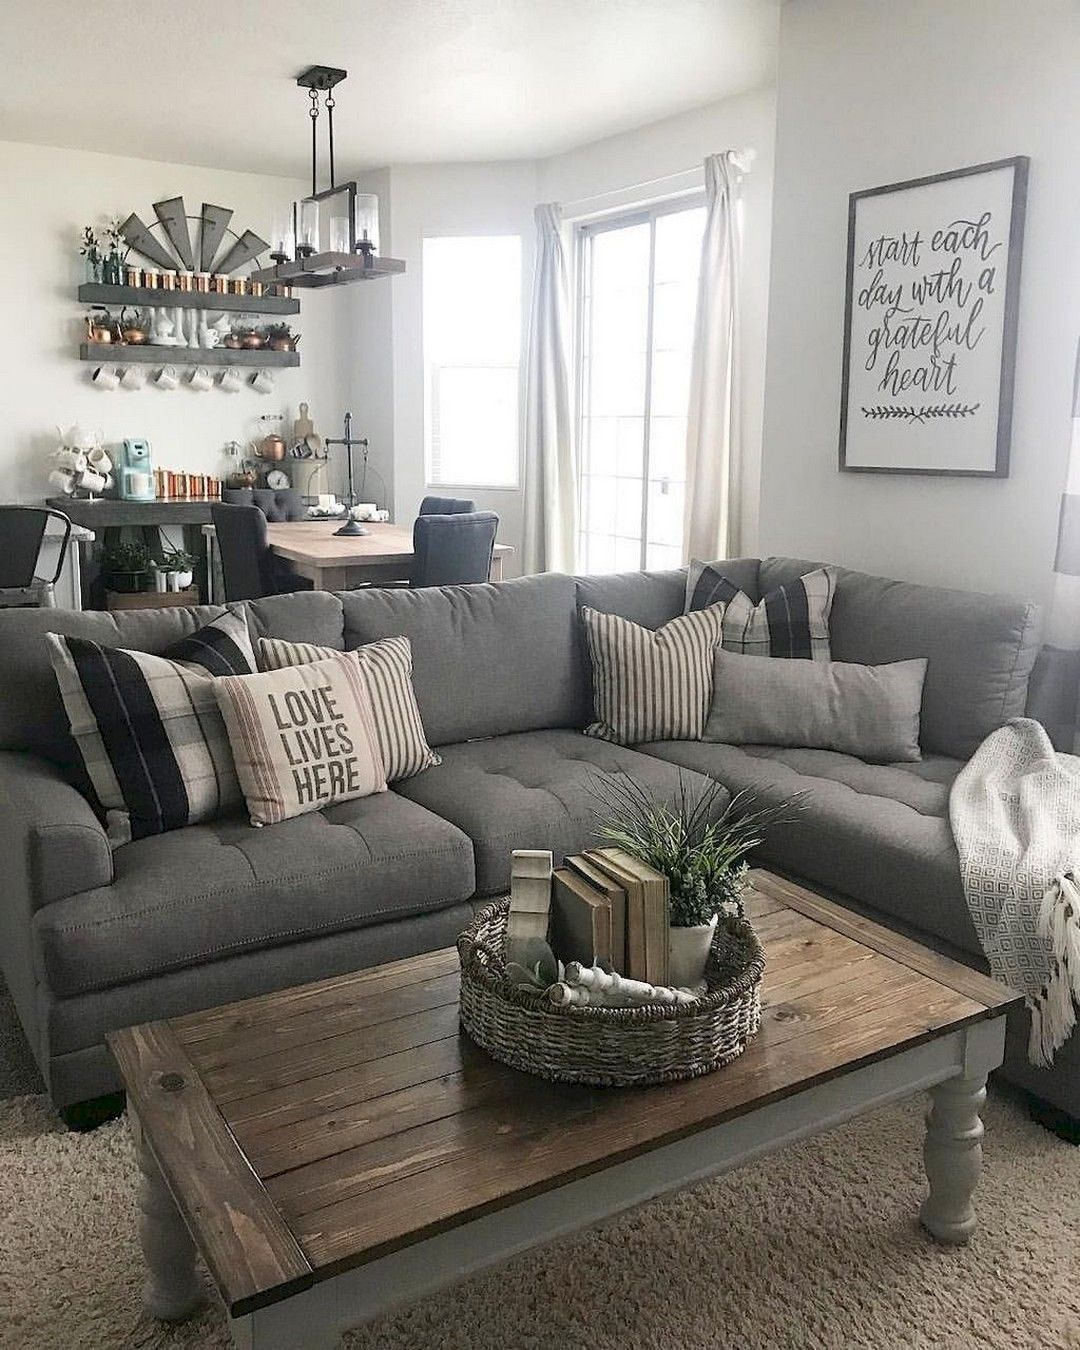 Some Gorgeous Farmhouse Living Room Decors To Improve In Any House Designs Goodnewsarchitecture Modern Farmhouse Living Room Decor Farm House Living Room Cozy Farmhouse Living Room